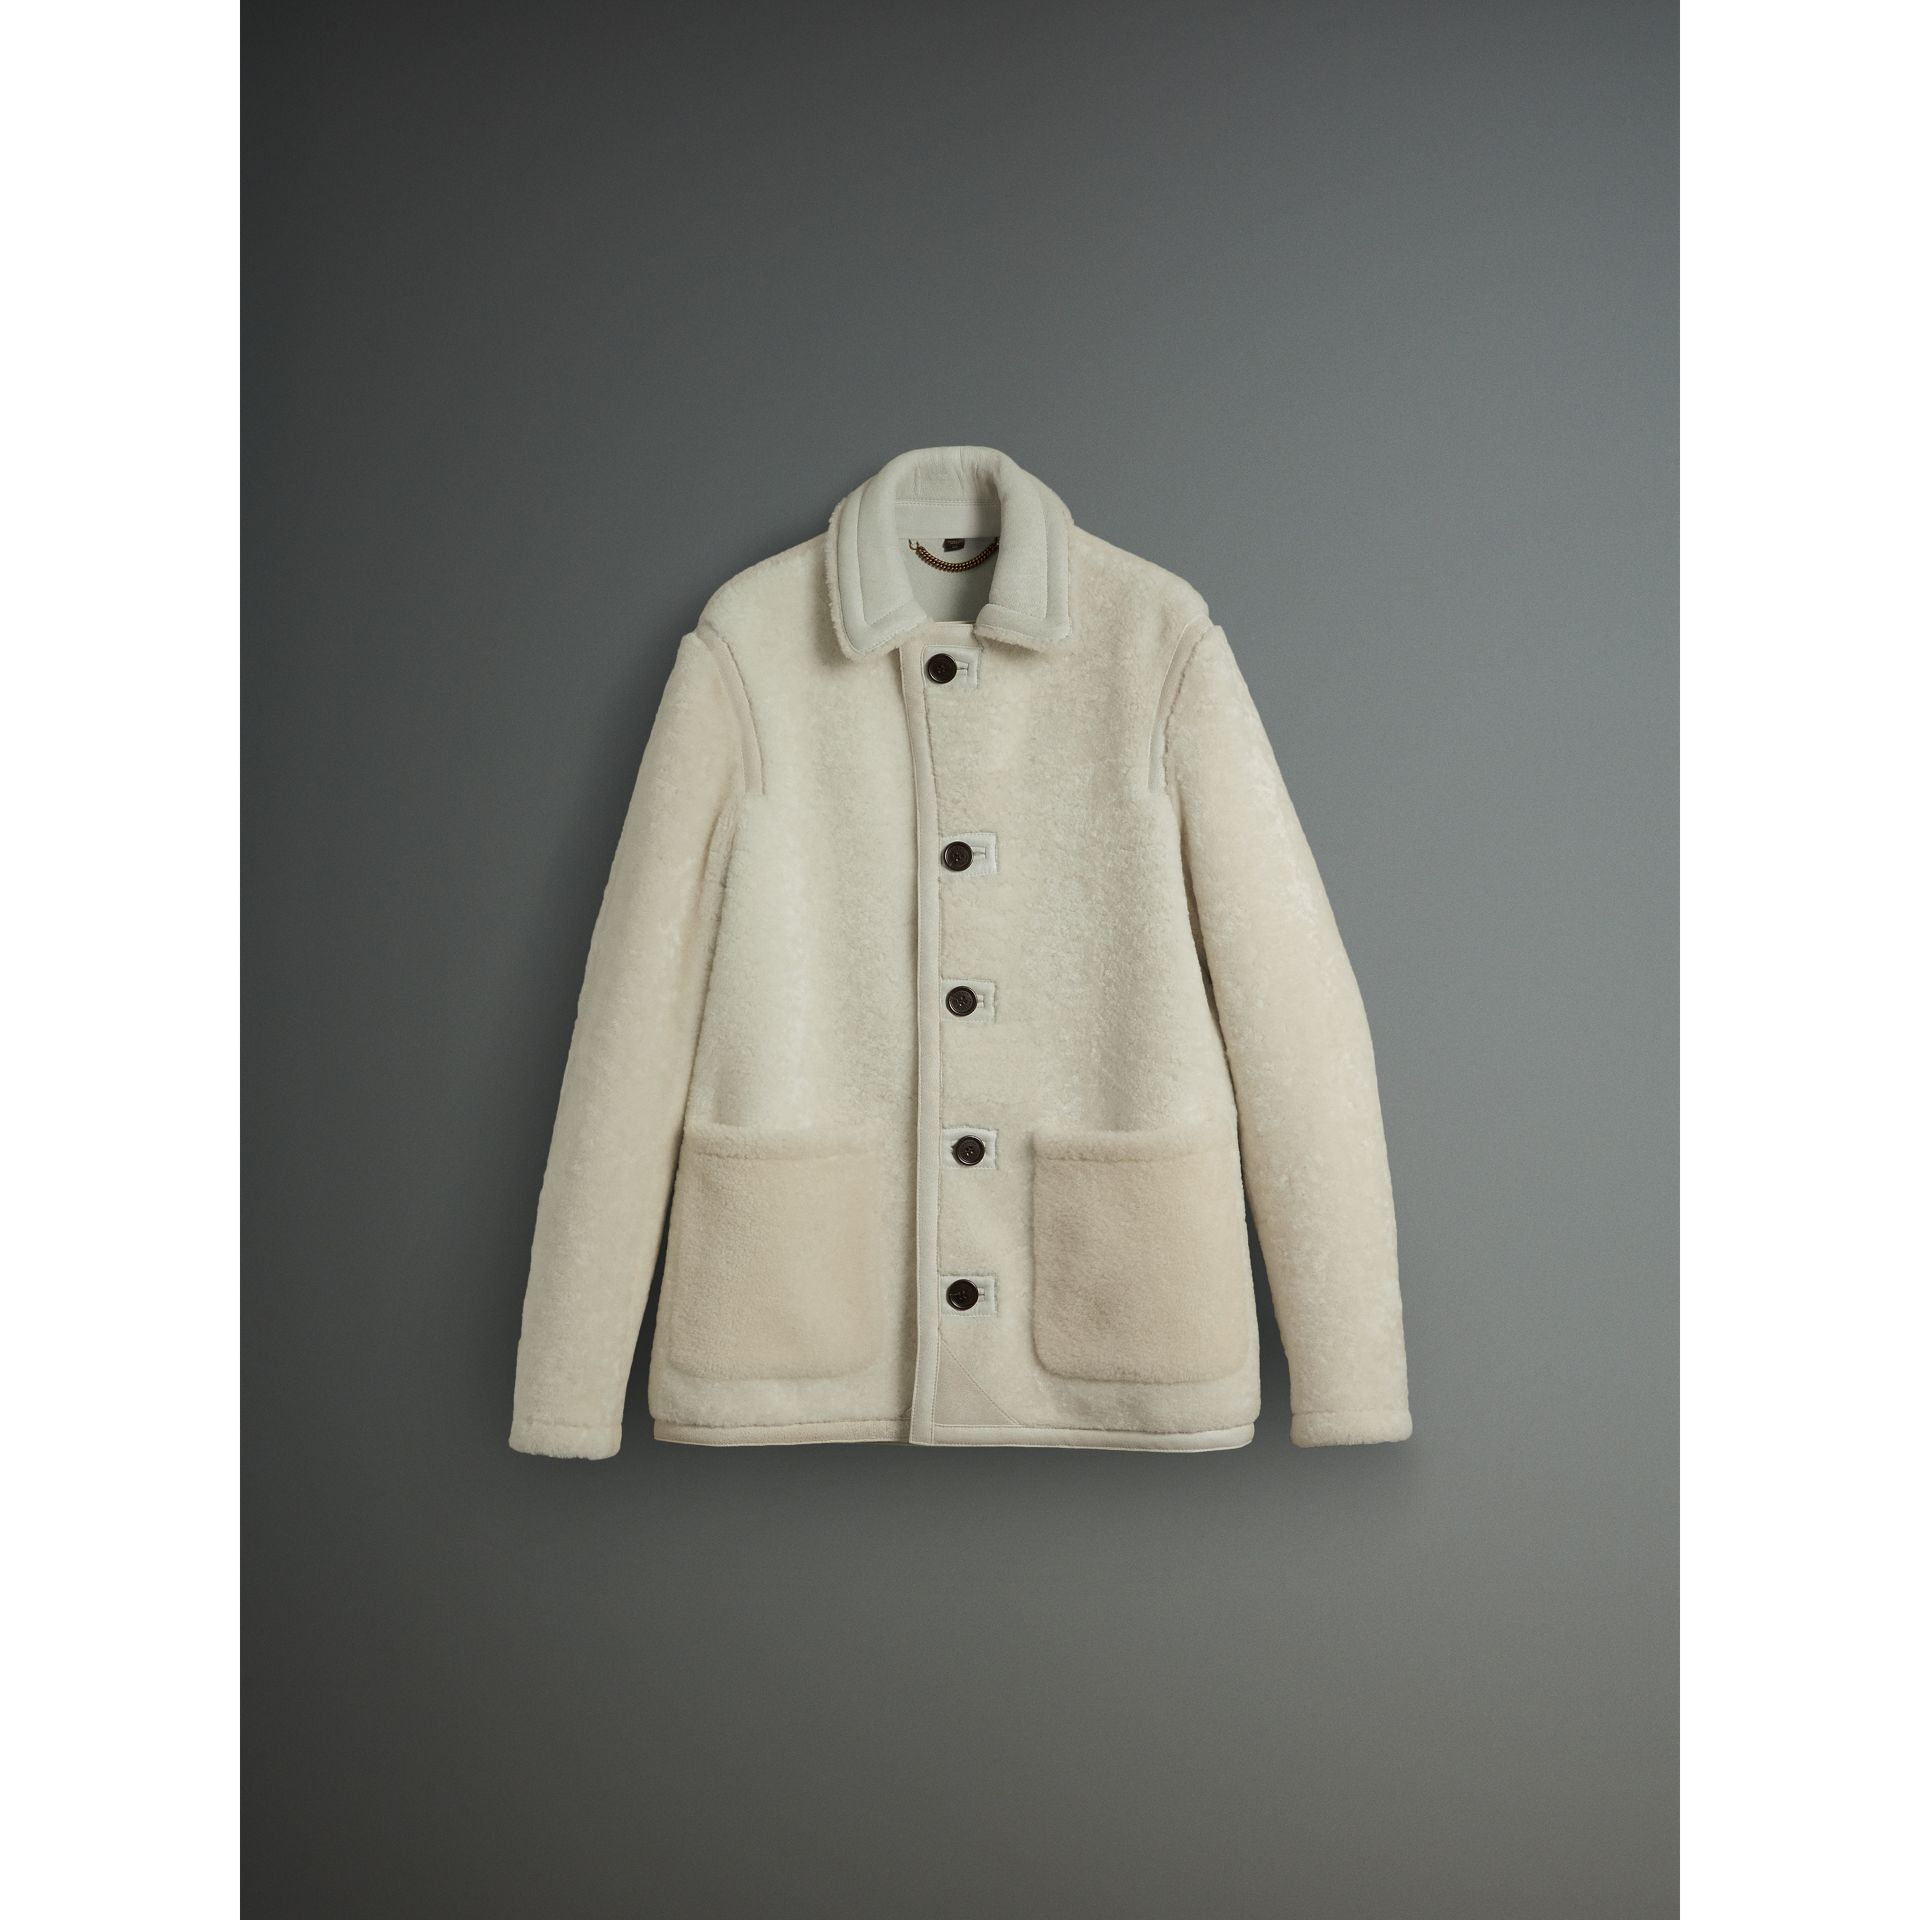 Burberry White Shearling Jacket